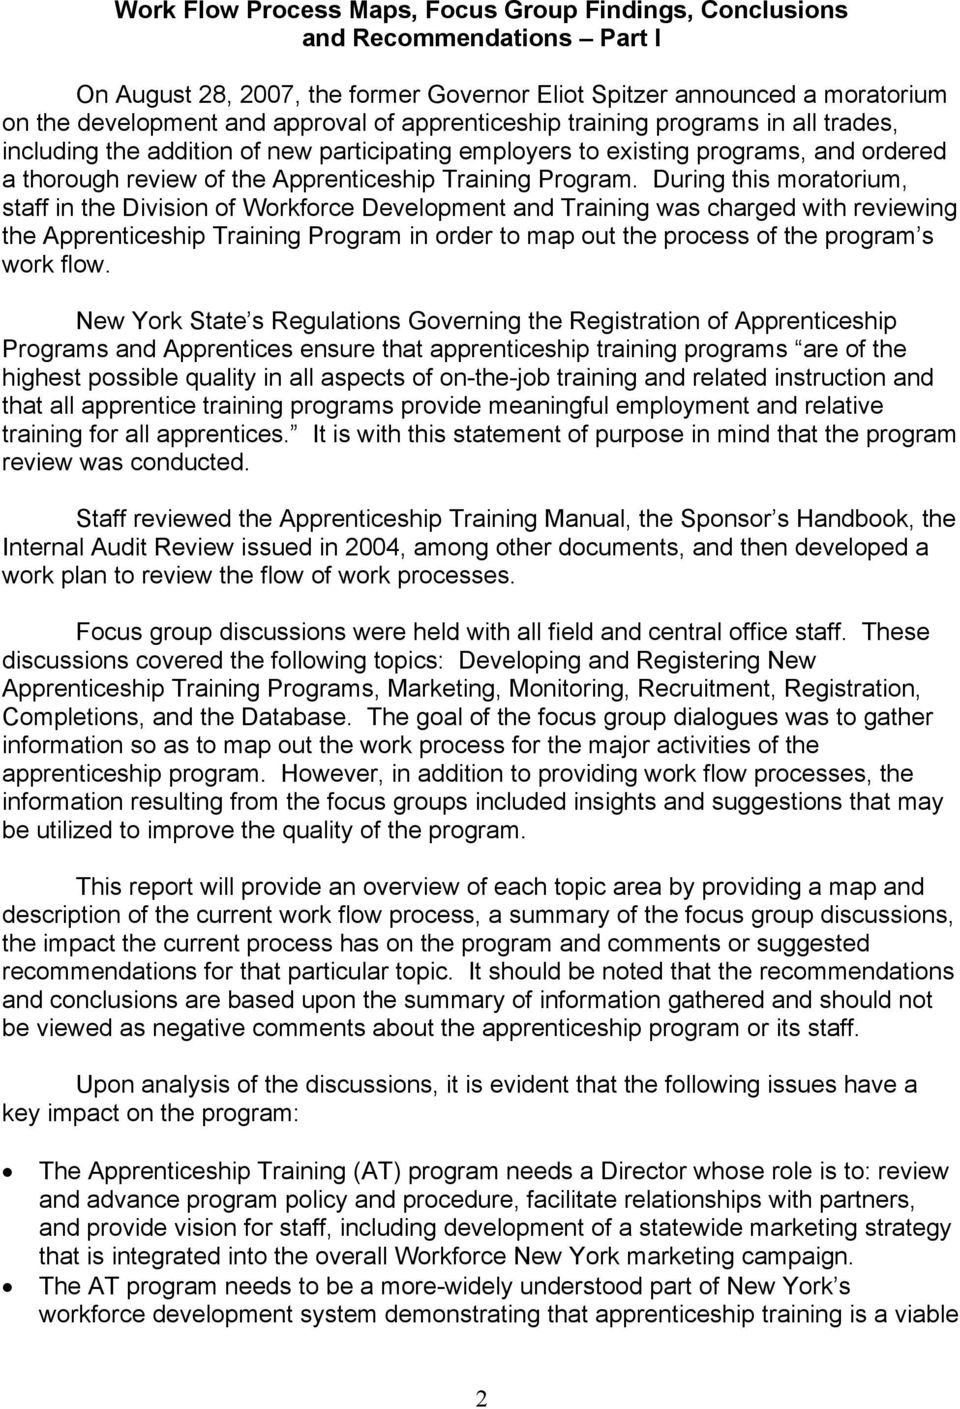 During this moratorium, staff in the Division of Workforce Development and Training was charged with reviewing the Apprenticeship Training Program in order to map out the process of the program s